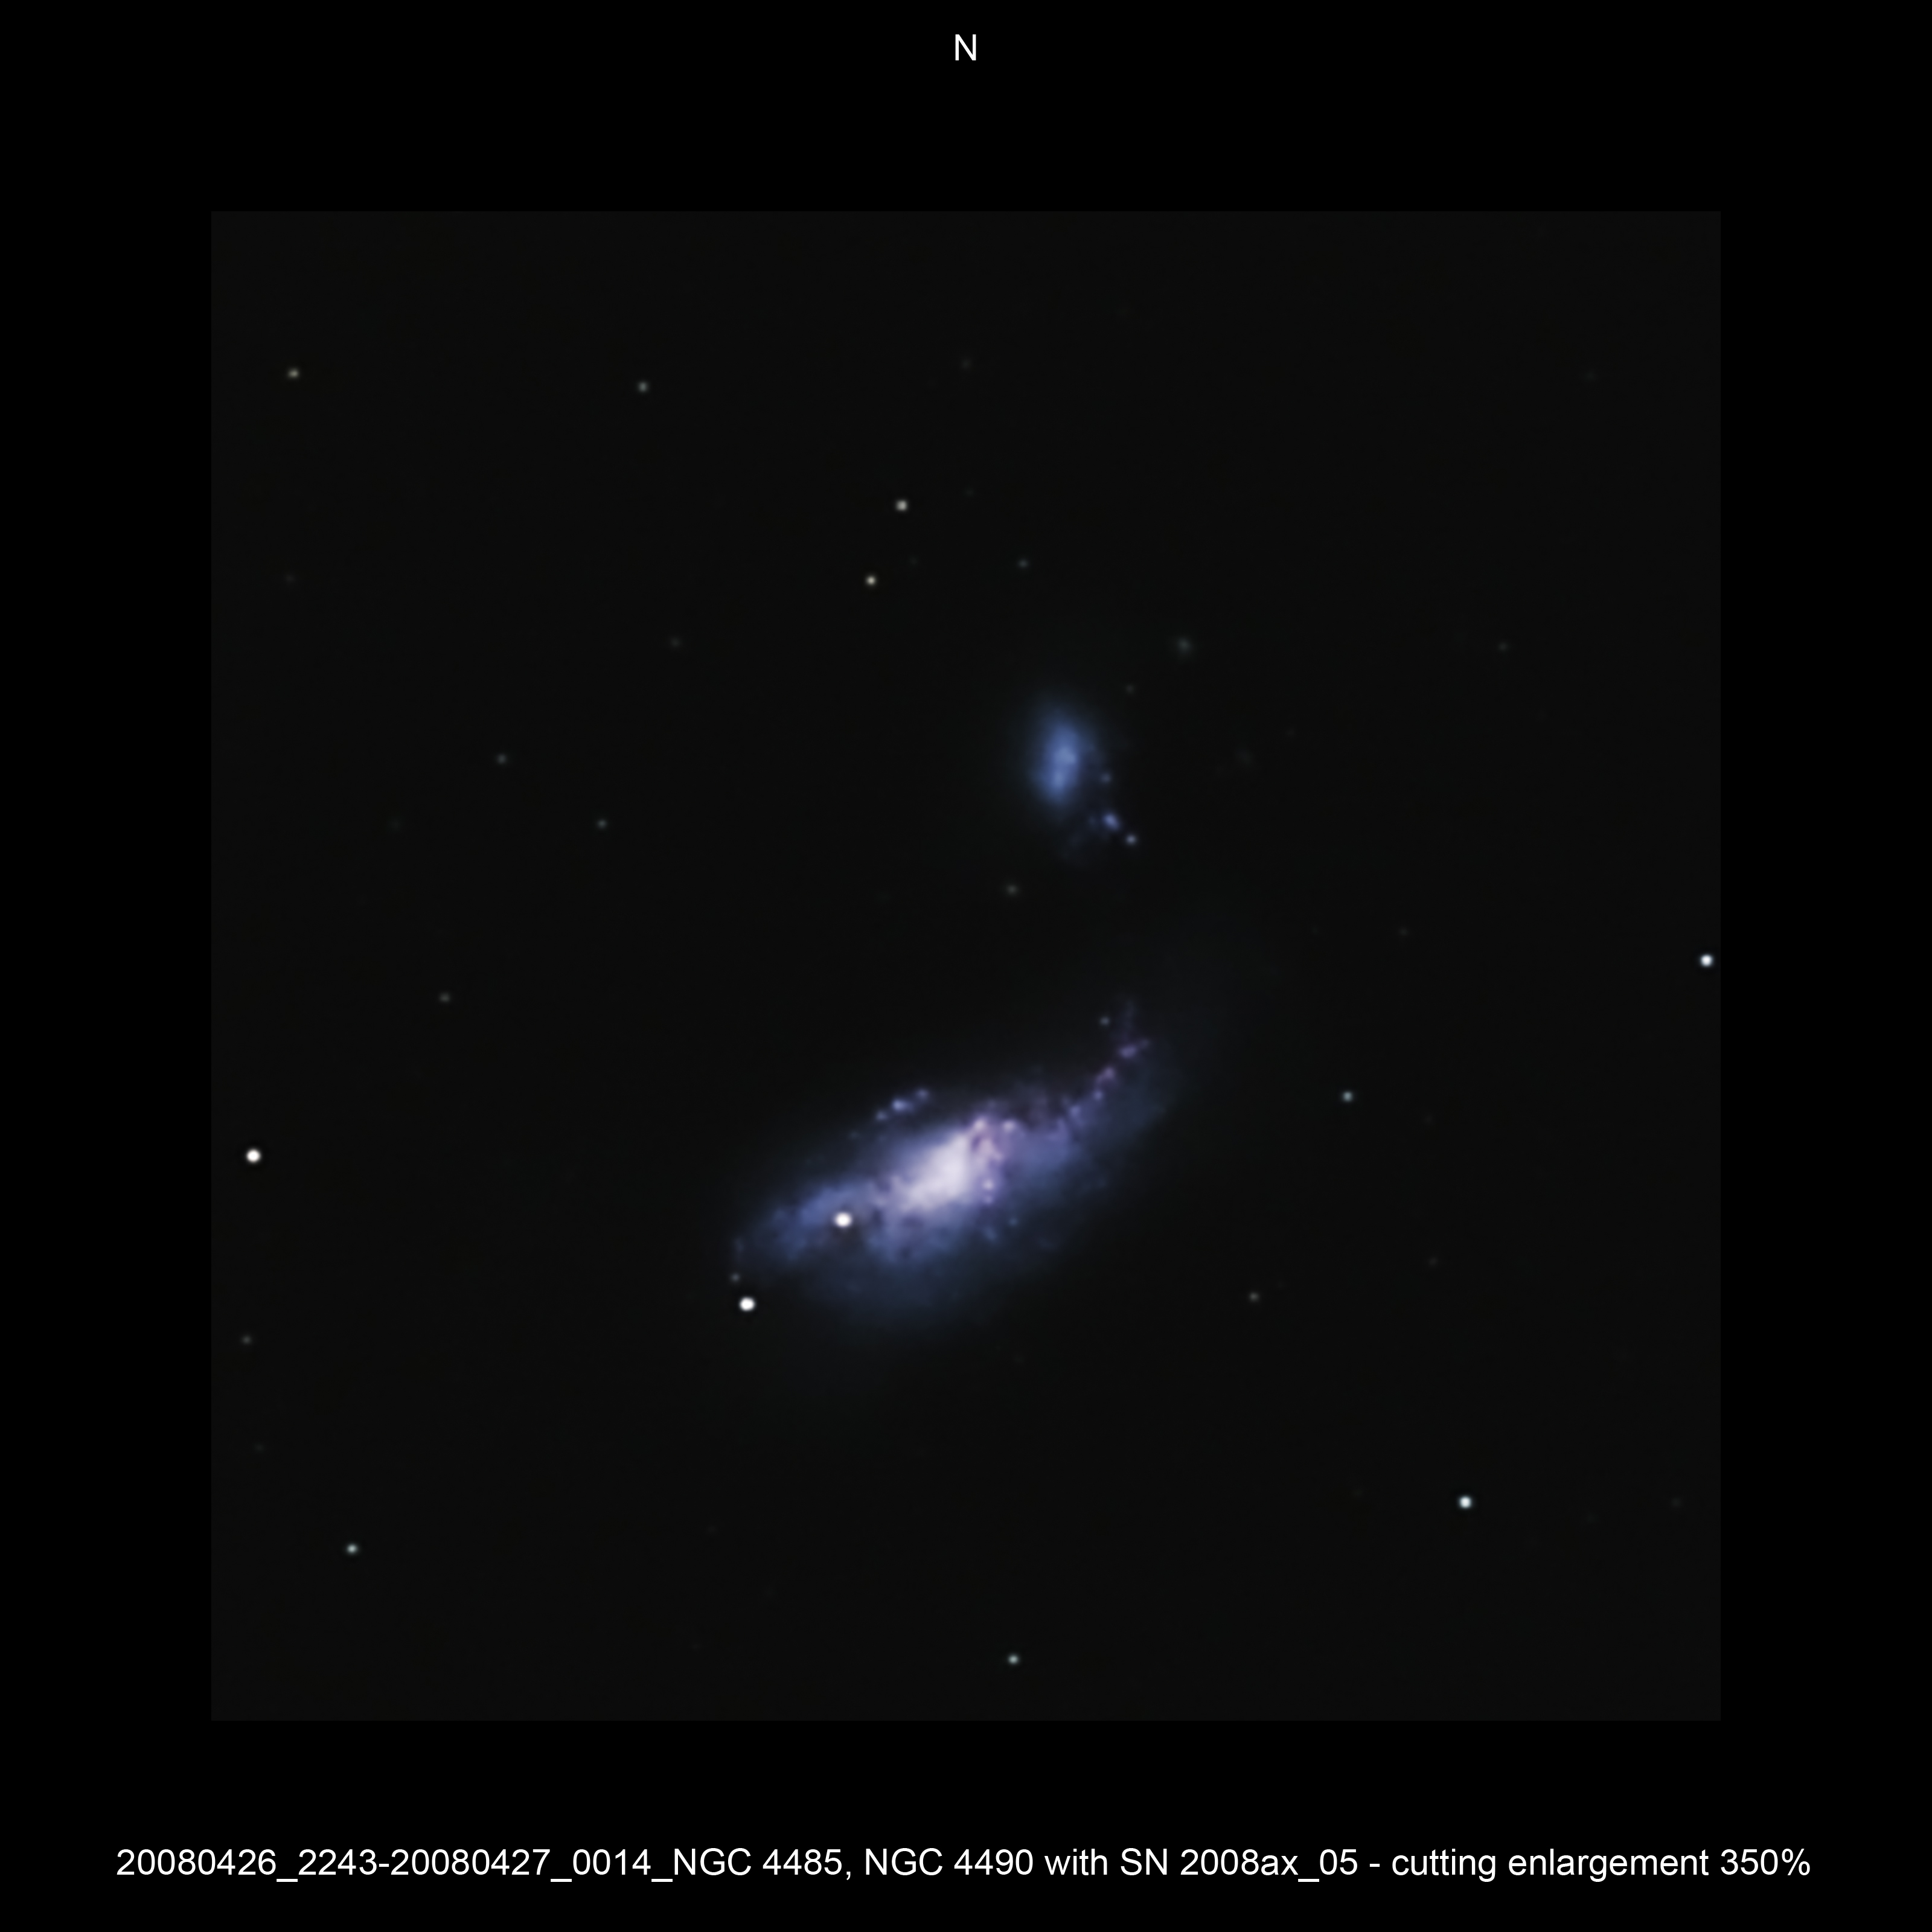 20080426_2243-20080427_0014_NGC 4485, NGC 4490 with SN 2008ax_05 - cutting enlargement 350pc.JPG -  CVn Newton d 309,5 / af 1623 & Coma Corrector CANON-EOS5D (AFC-Filter) 800 ASA no add. filter 8 light-frames 360s, auto dark, 3 flat, 10 bias Guidemaster, DSS, Canon-RAW-Image, Adobe-PS-CS3 SN2008AX